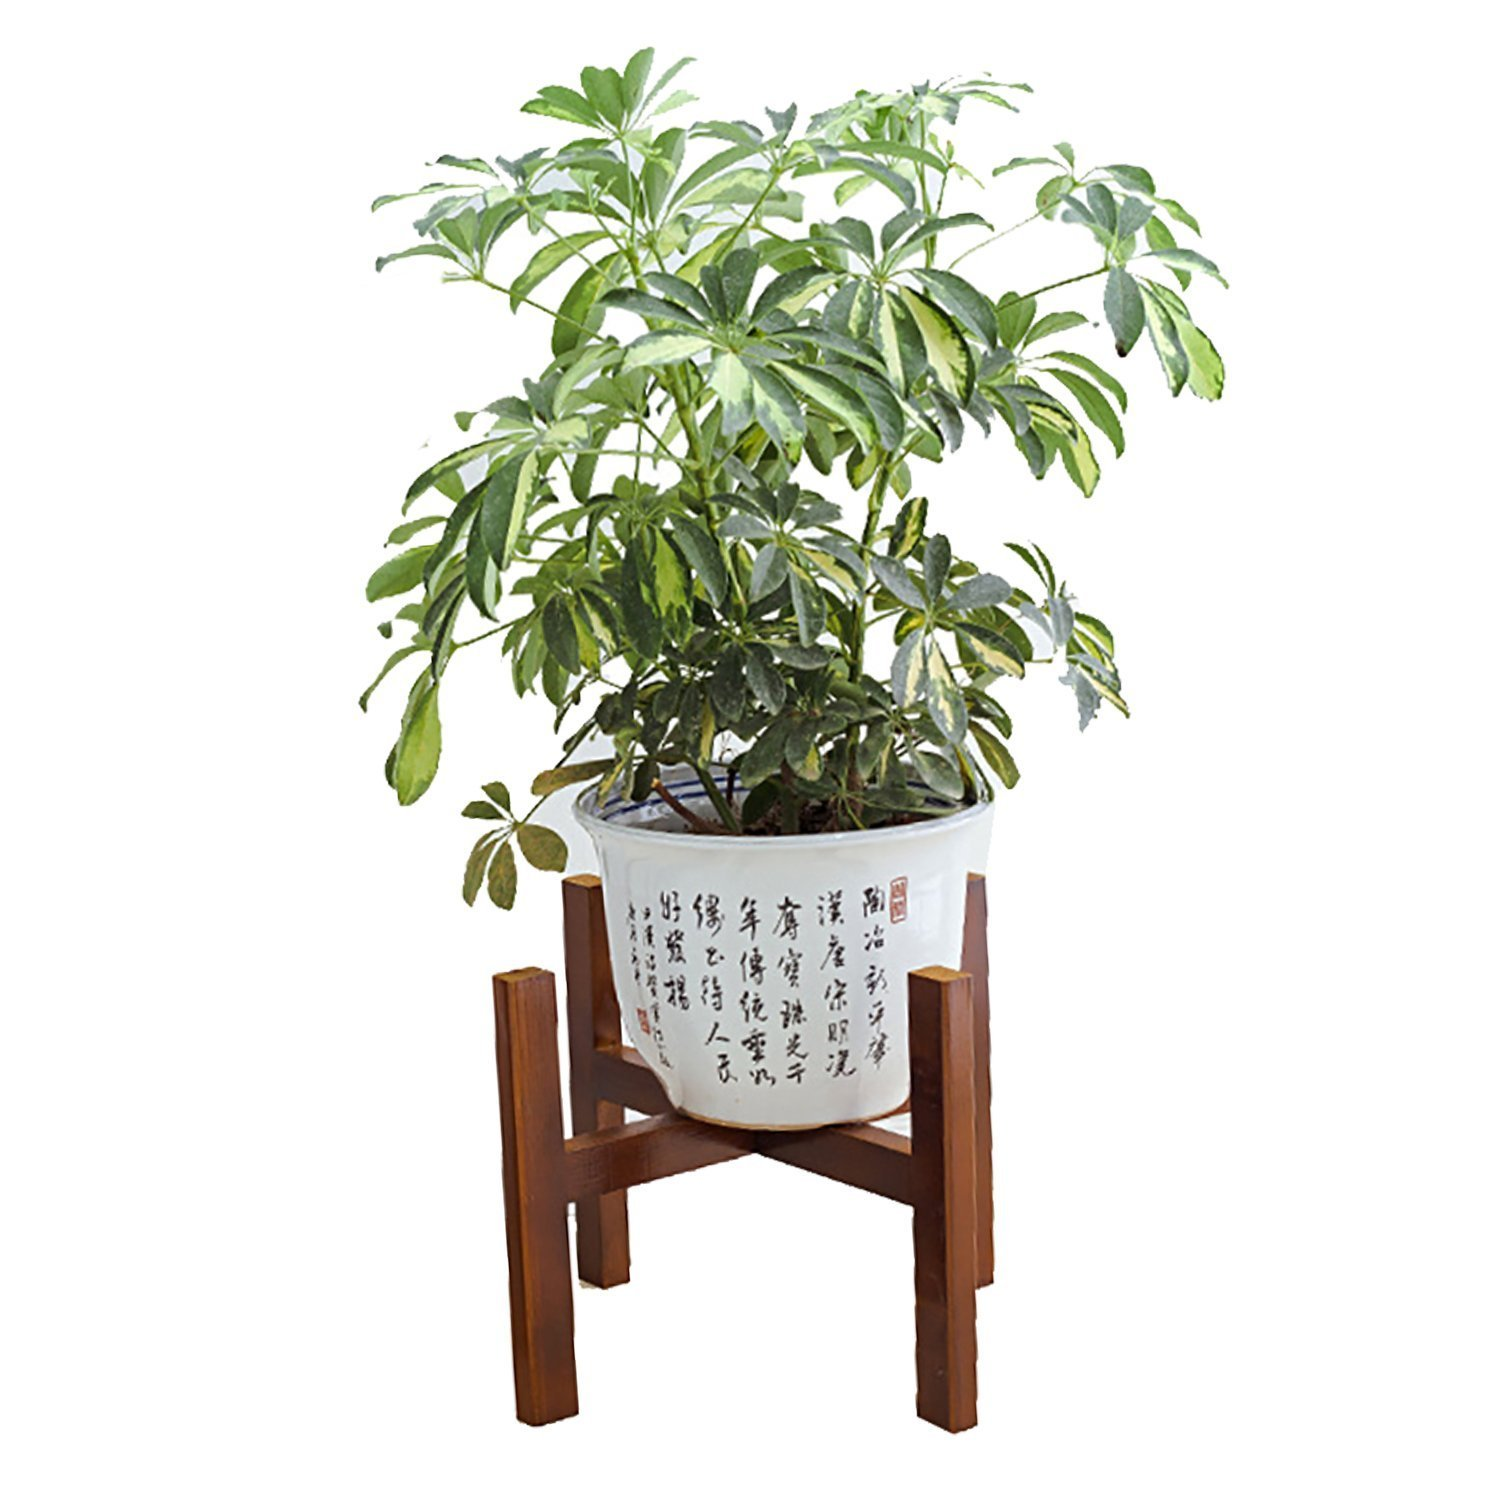 Wood Potted Plant Stands DOIOWN Corner Flower Stand Indoor Plant Pot Holder Planter Supports Display Stands for Home,Garden,Office (Walnut&Short) by DOIOWN